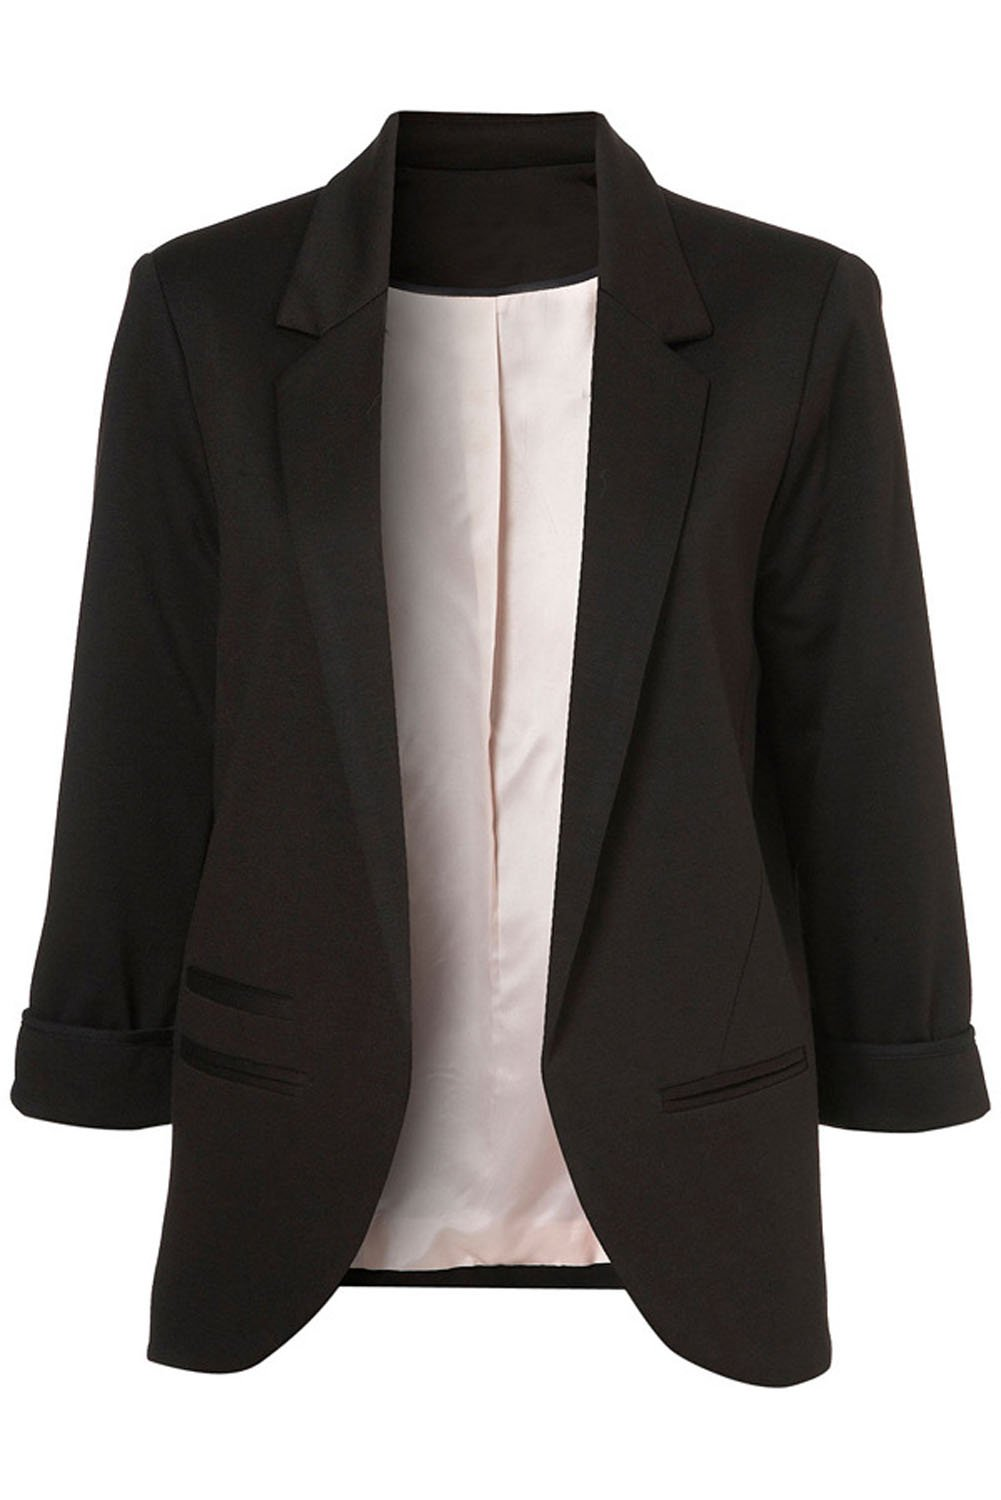 Merryway Women's Fashion Cotton Rolled up 3/4 Sleeve Slim Office No-Buckle Blazer Jacket Suits(Black)